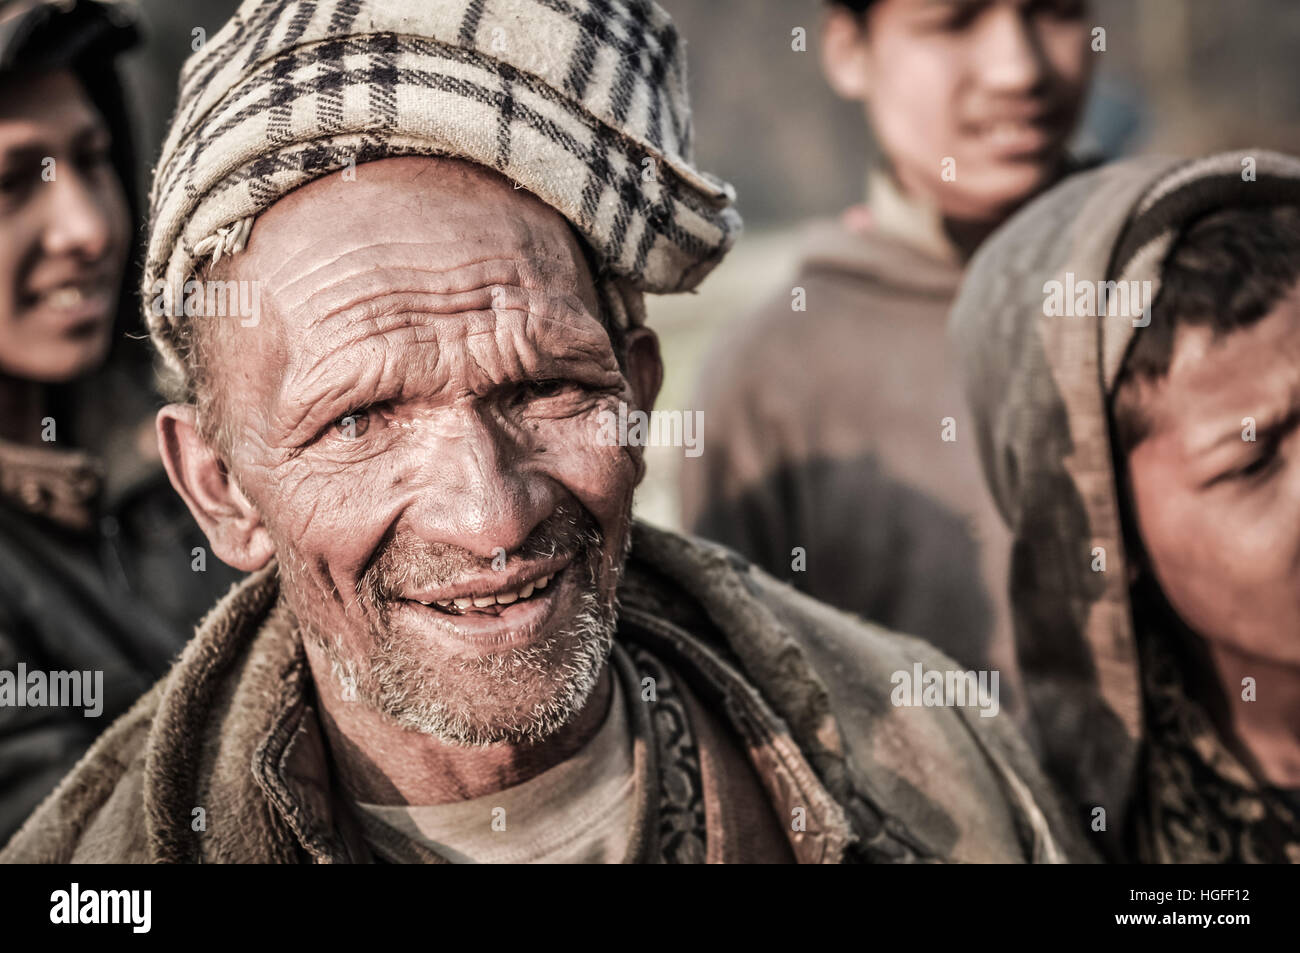 Dolpo, Nepal - circa May 2012: Old native man with little beard wears brown headcloth and jacket and frowns to photocamera - Stock Image